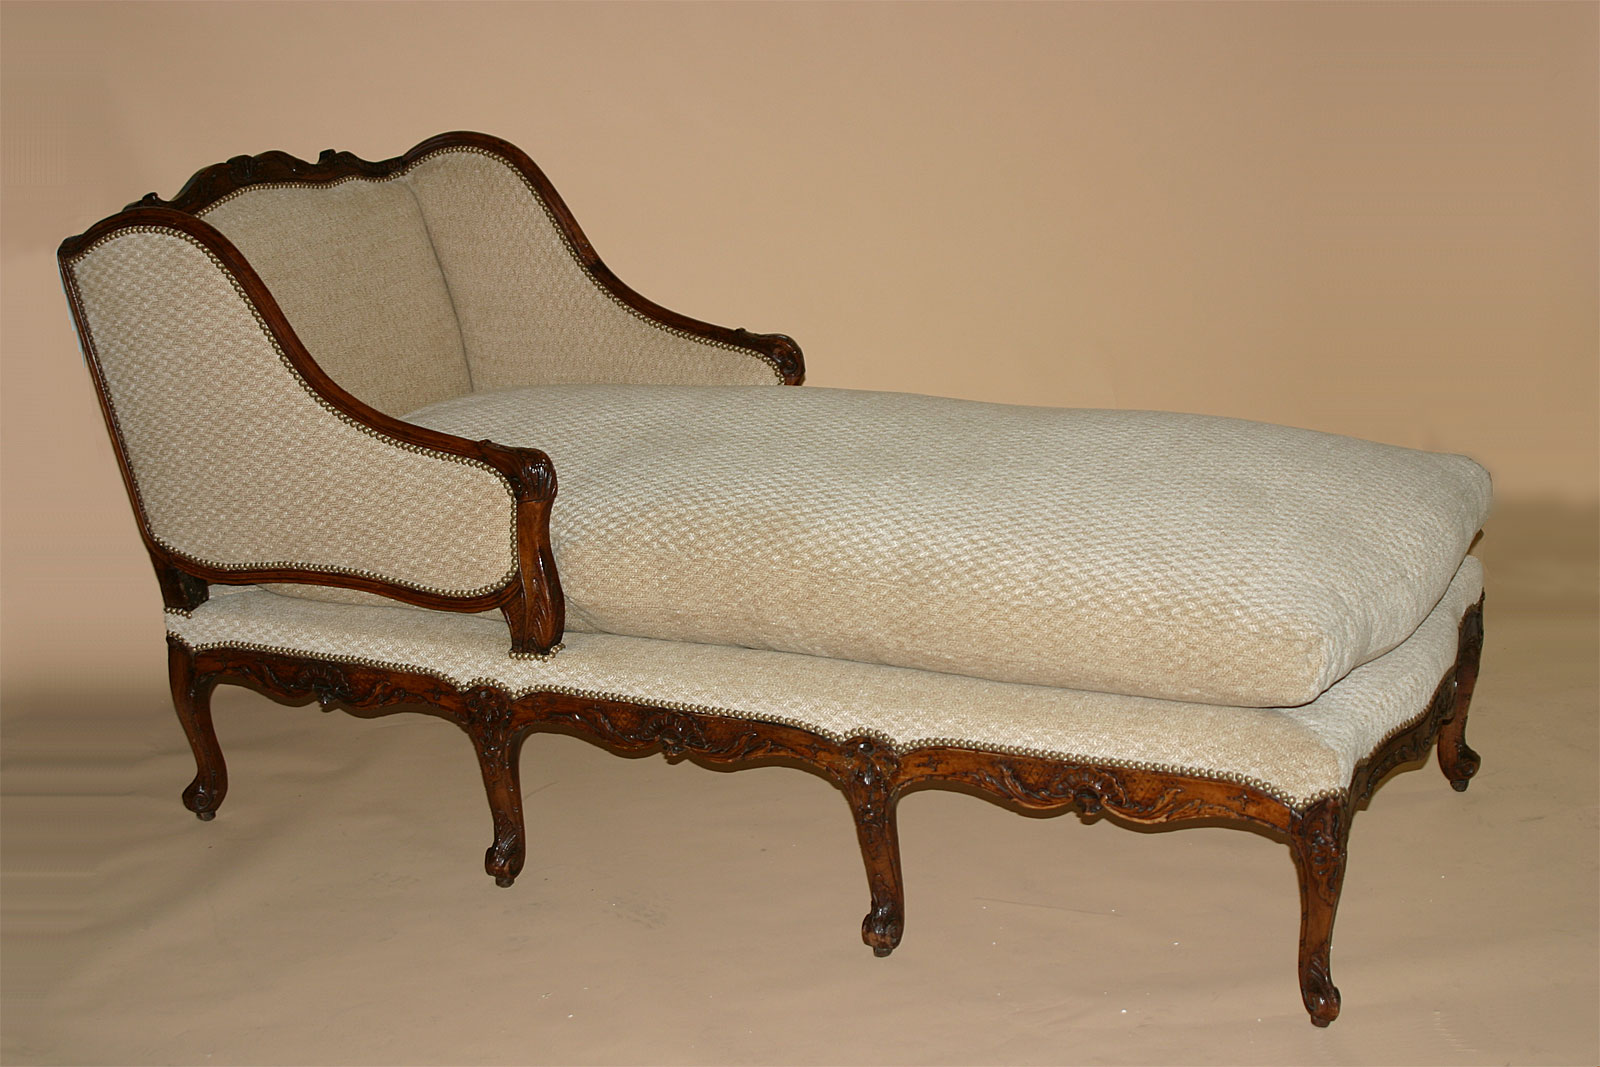 French louis xv period chaise longue for sale antiques for Chaise longue de couleur